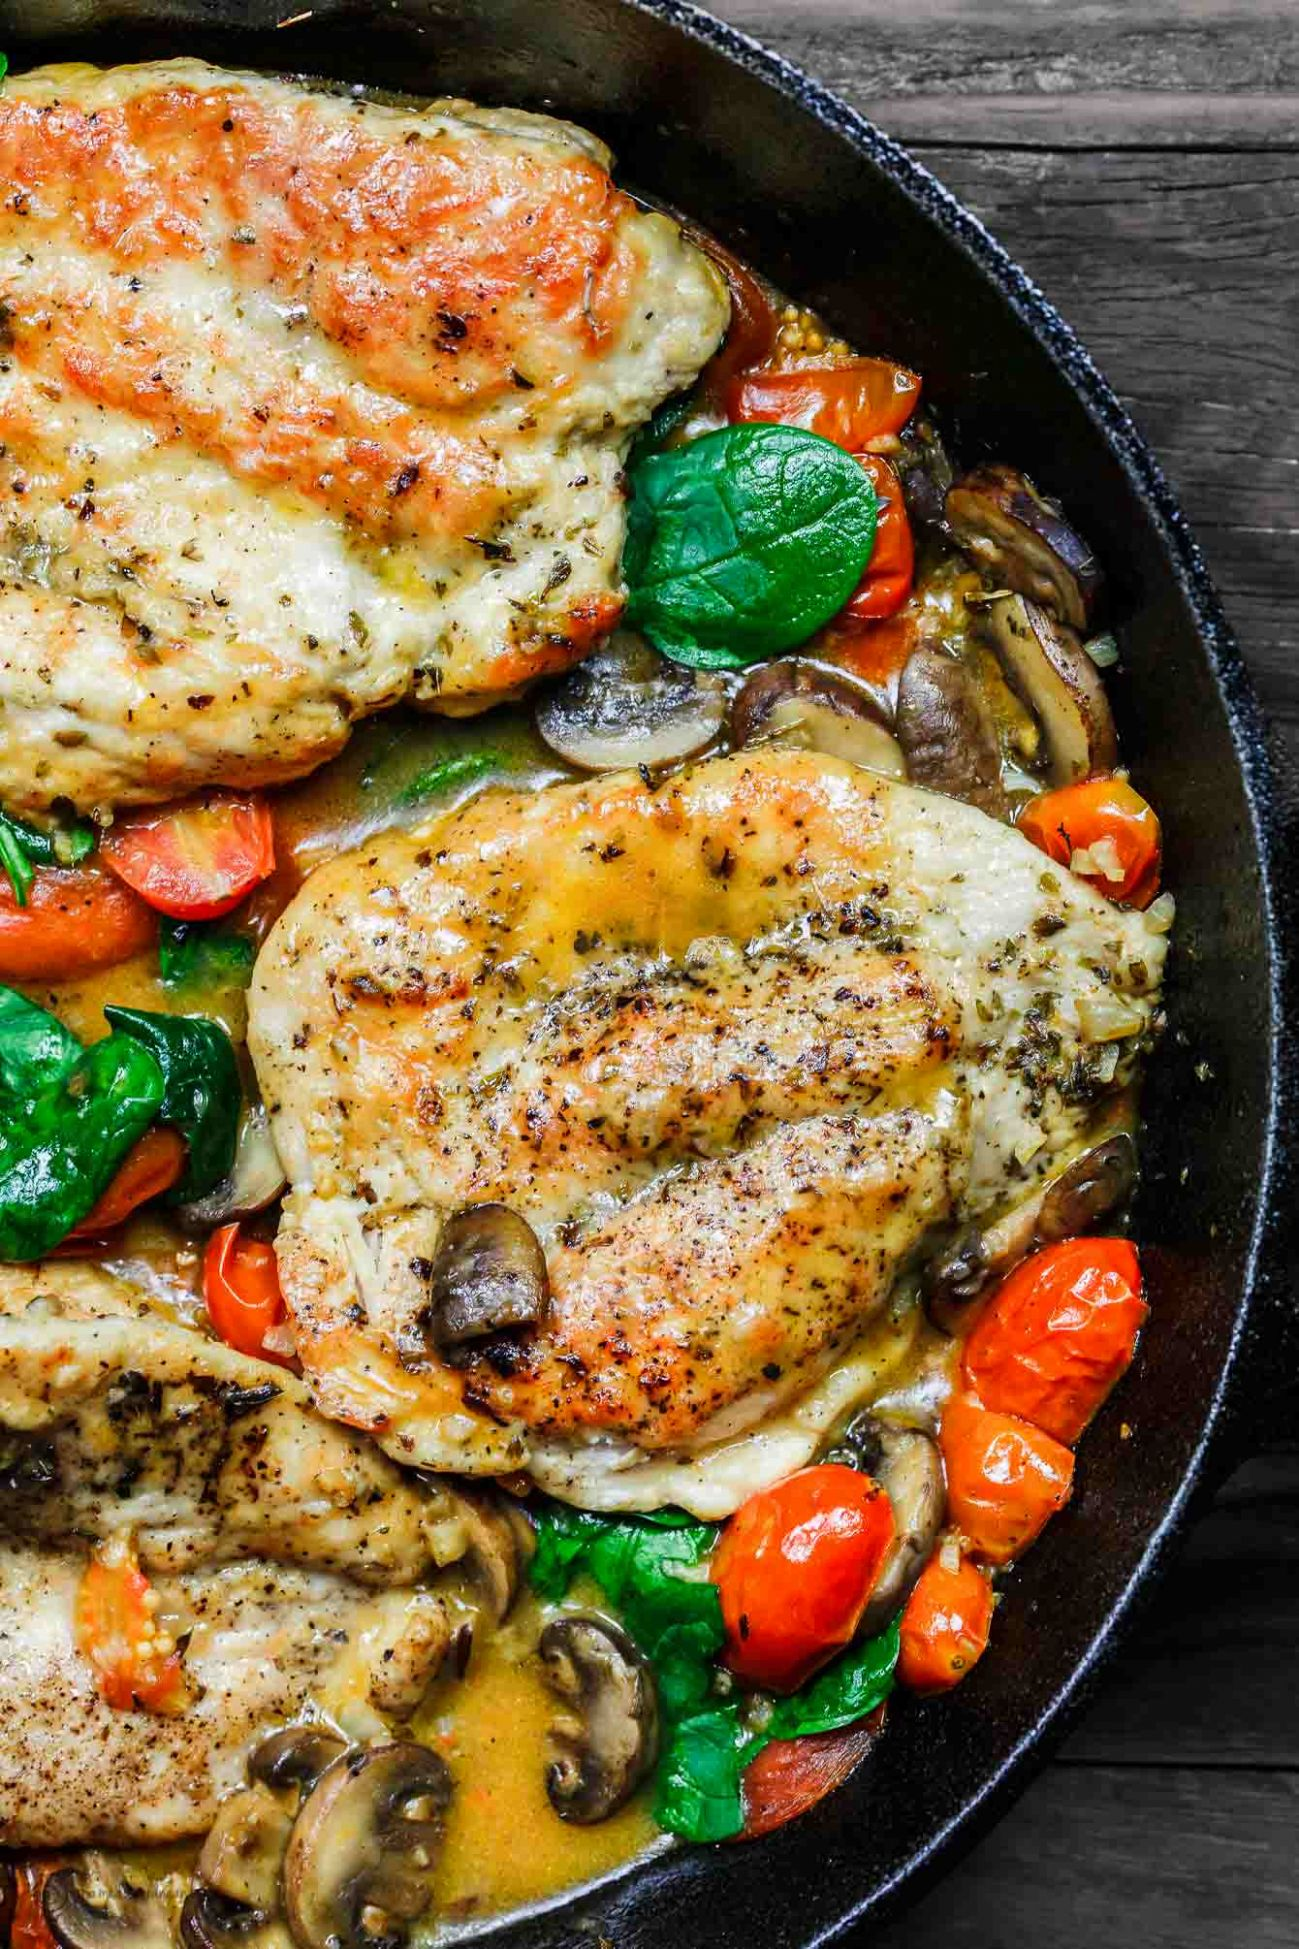 Italian Skillet Chicken with Tomatoes and Mushrooms - Recipes Chicken Breast Tomatoes